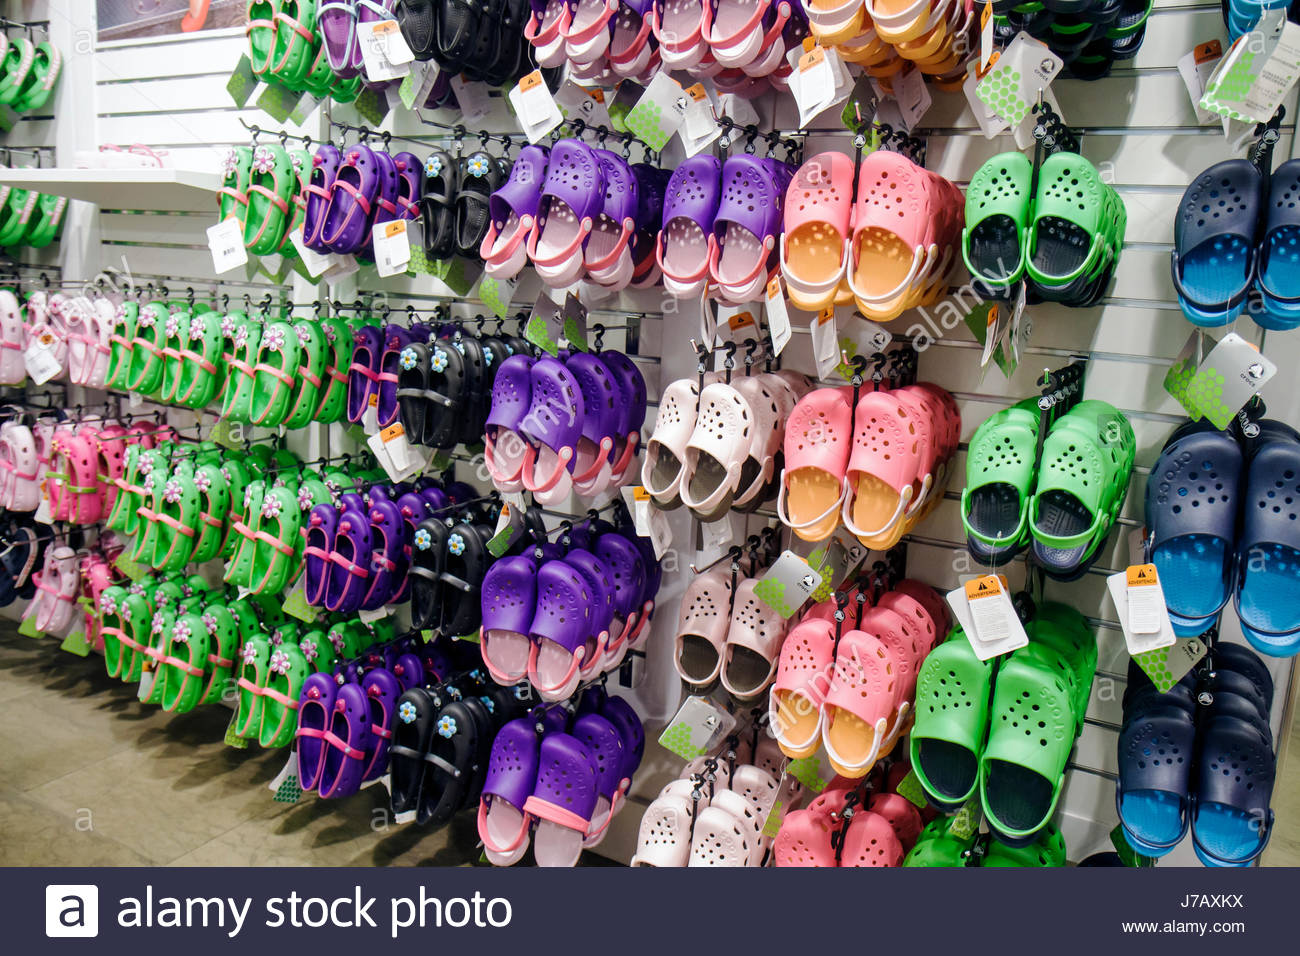 af1b66a4d Miami Florida Aventura Mall shopping retail display for sale Crocs shoes  fashion store